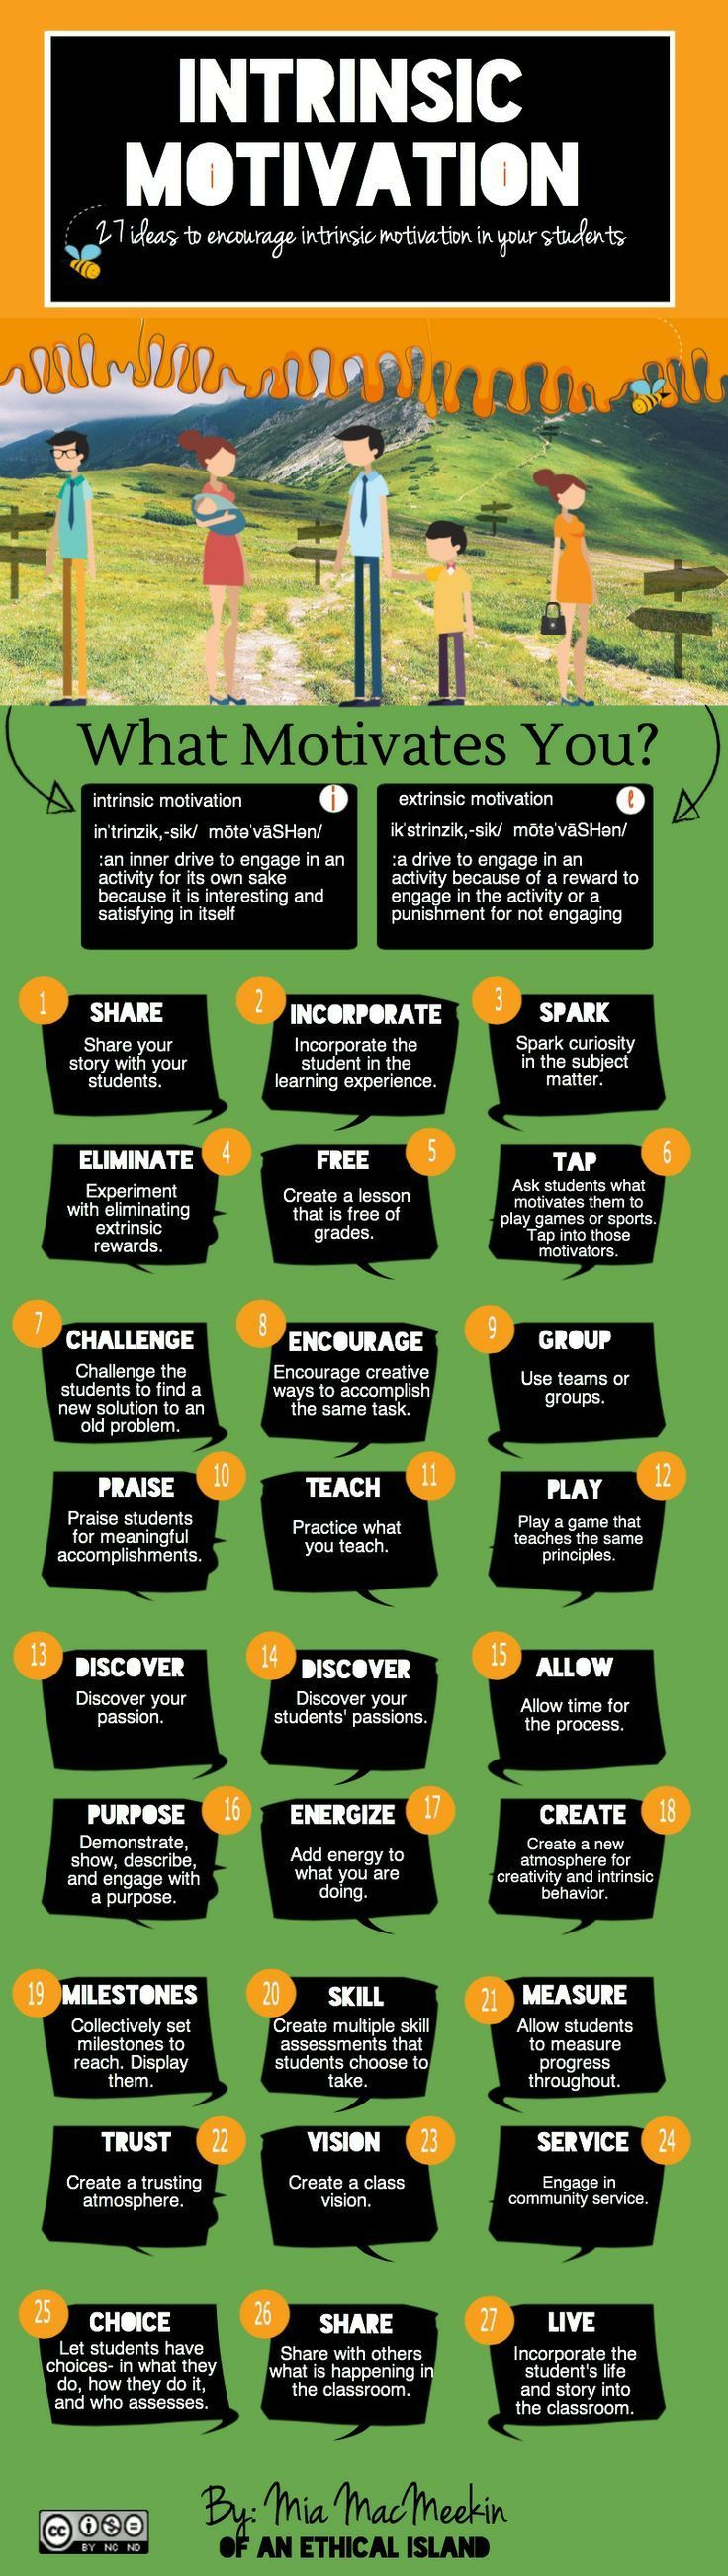 Get your students behind the concept of Intrinsic Motivation. Show and teach them what it means and what it is.